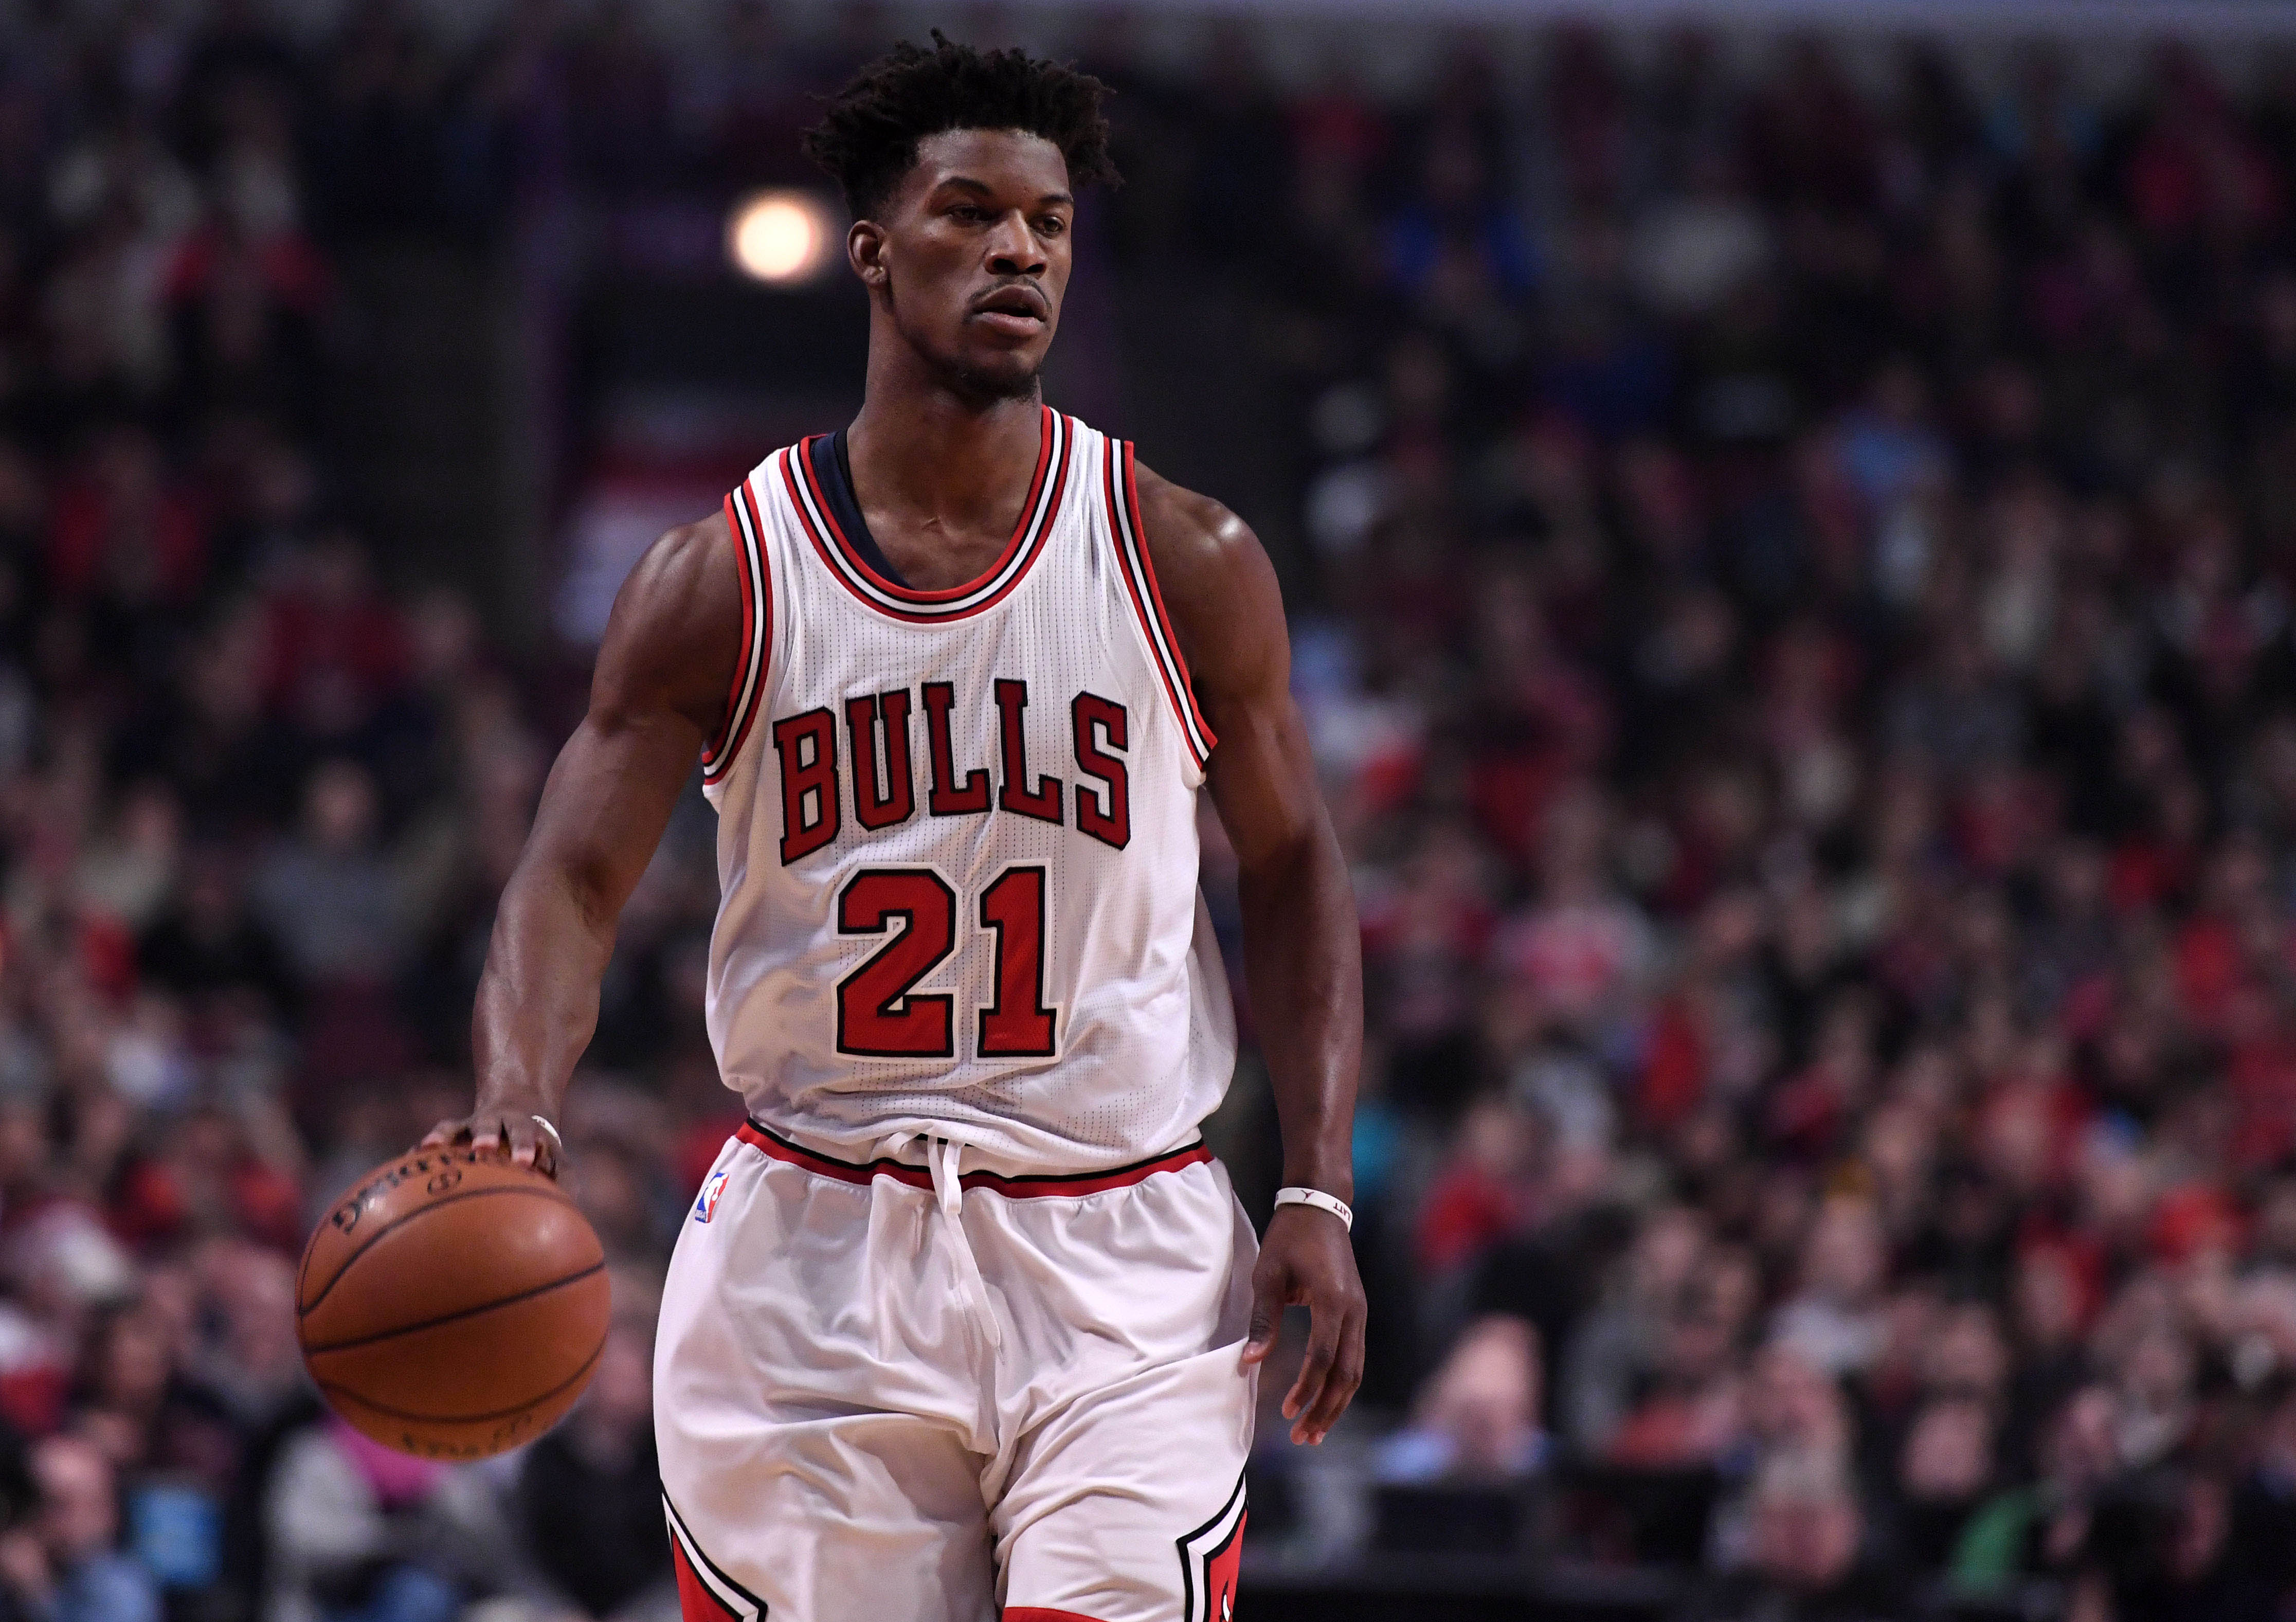 9809943-nba-new-orleans-pelicans-at-chicago-bulls-2